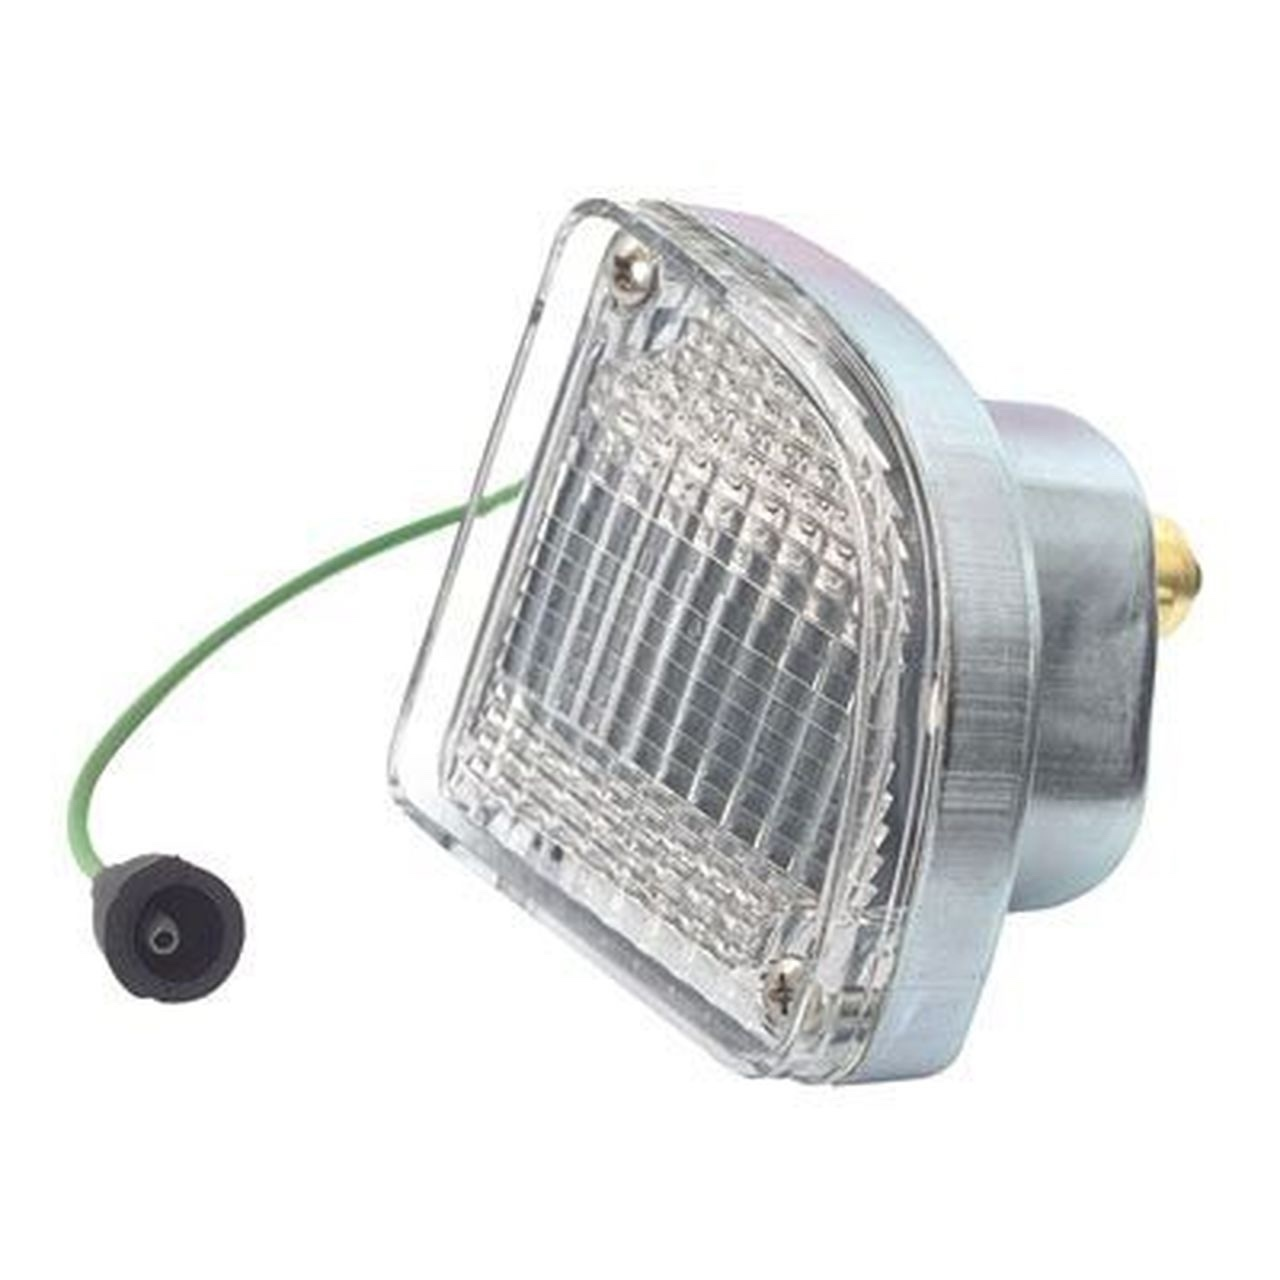 Backup Lamp or Reverse Light Assembly